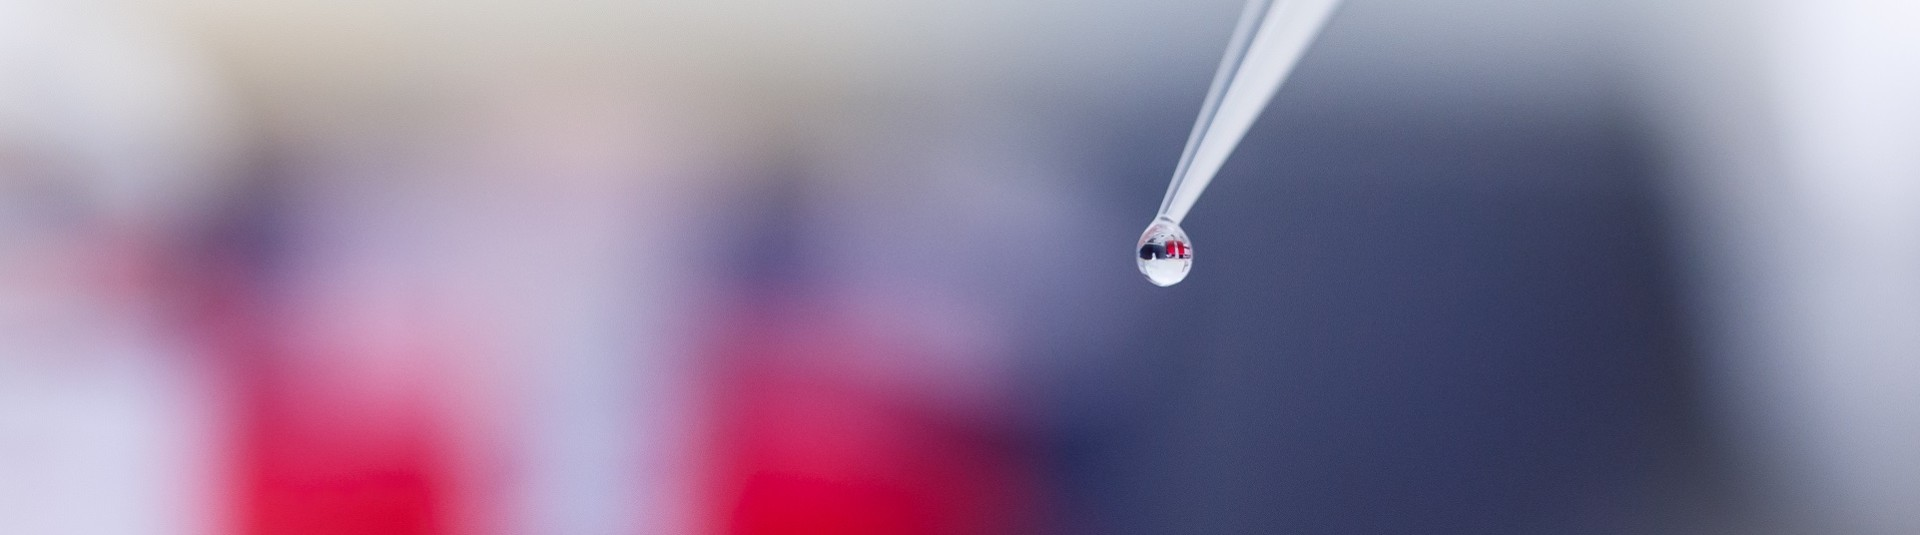 Polyplus-transfection - Drop of transfection reagent